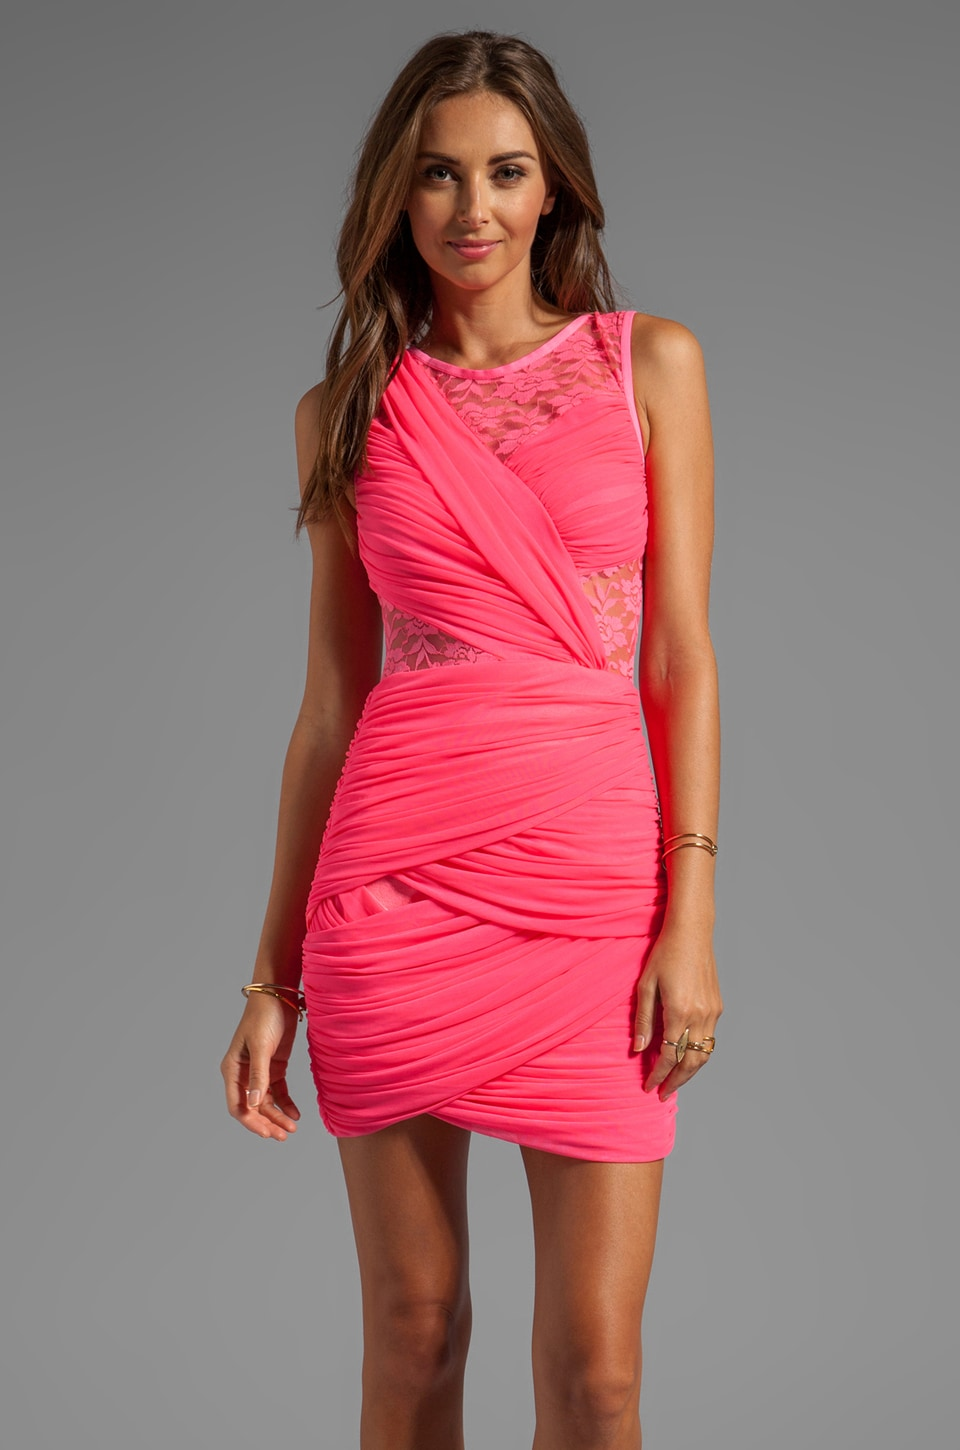 keepsake Just a Memory Tank Dress in Fluro Pink